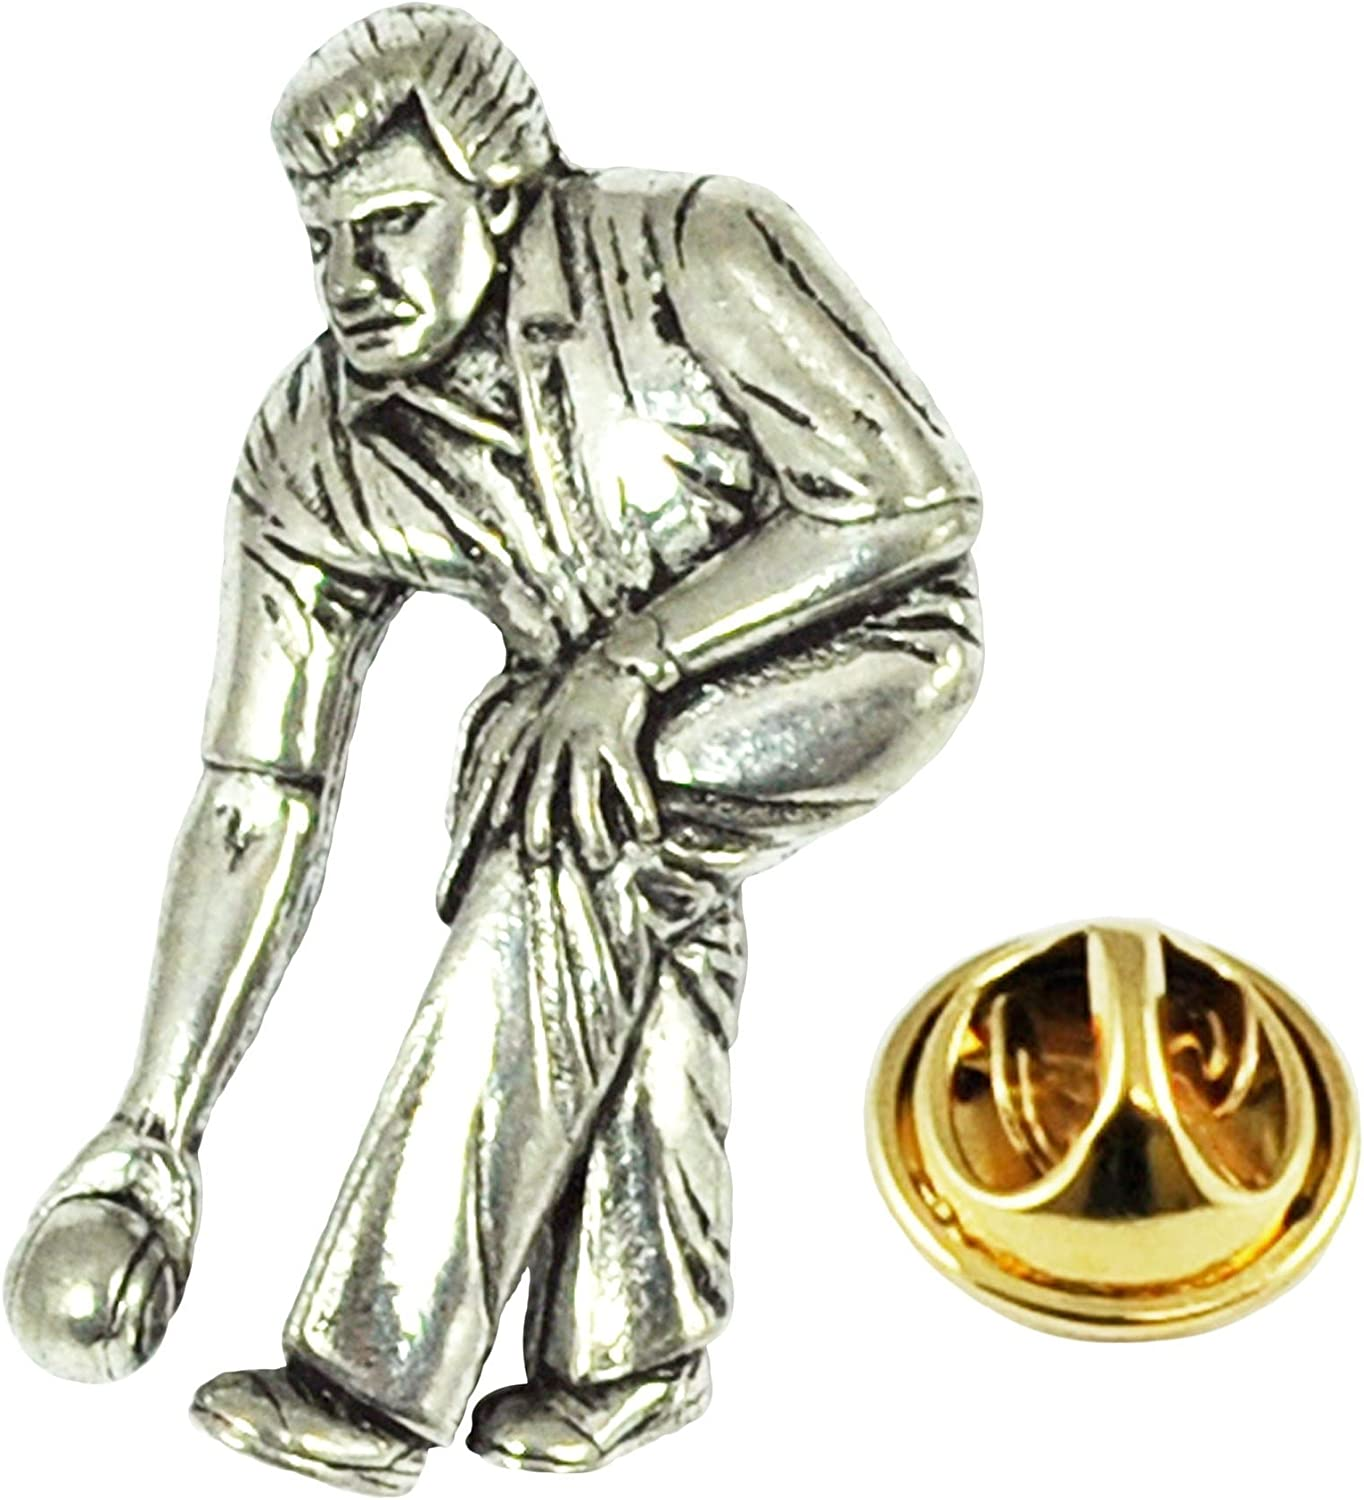 Bowls Player Quality Pewter Tie Clip